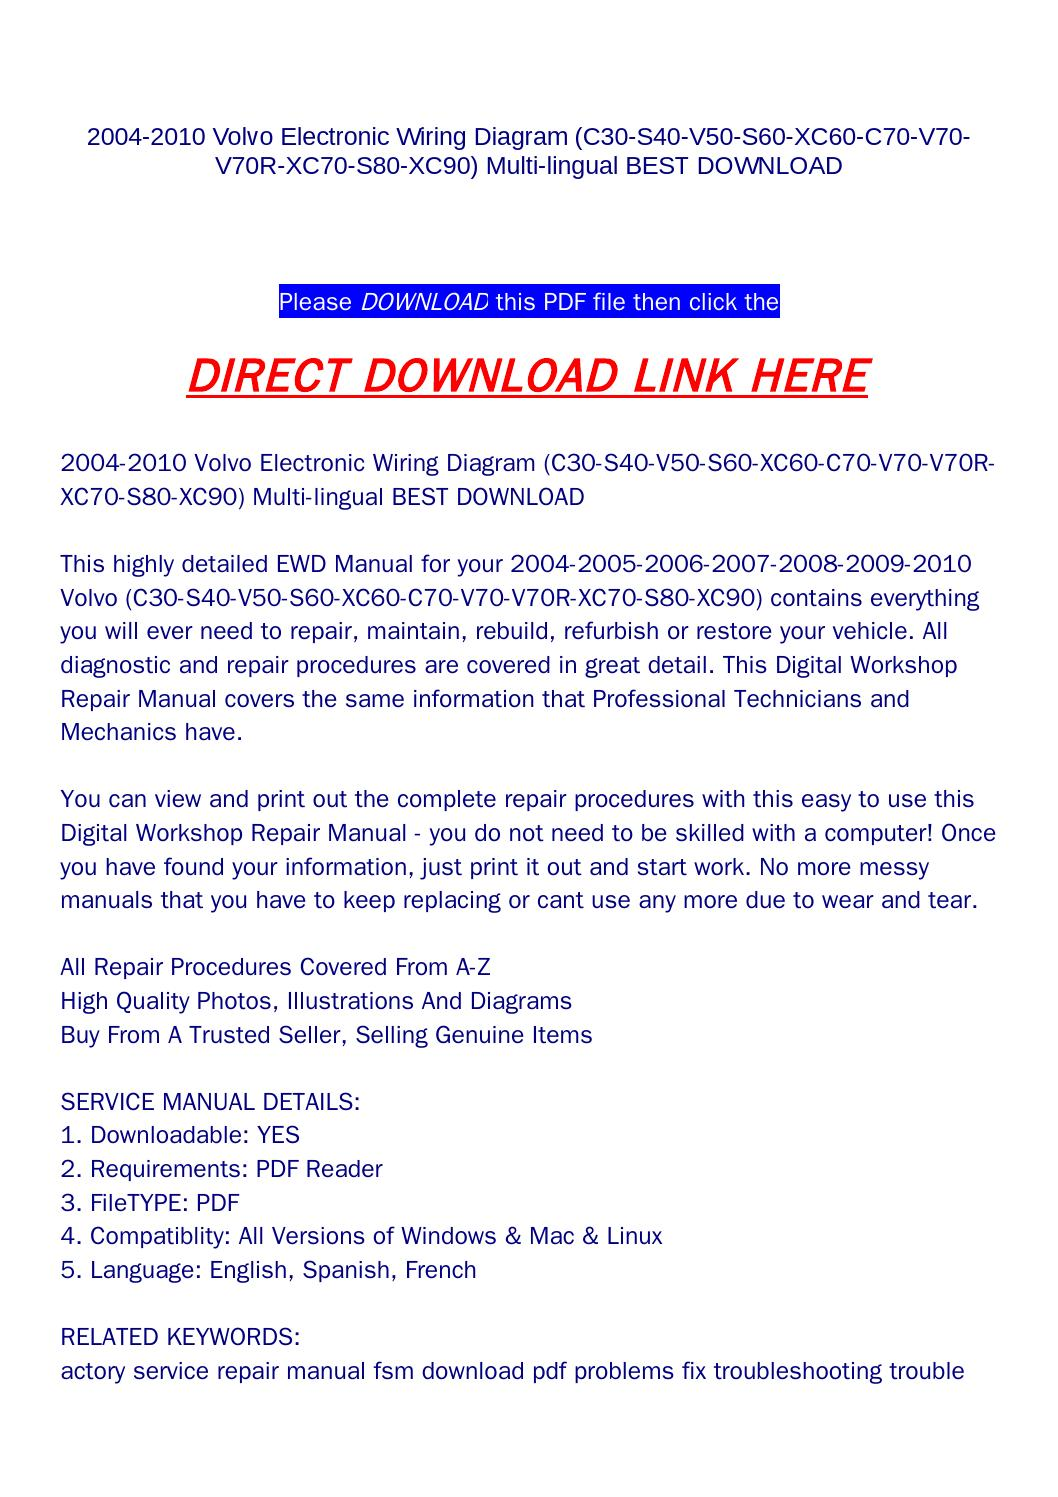 hight resolution of 2004 2010 volvo electronic wiring diagram c30 s40 v50 s60 xc60 c70 v70 v70r xc70 s80 xc90 multi li by yfg qualityservicemanual com issuu